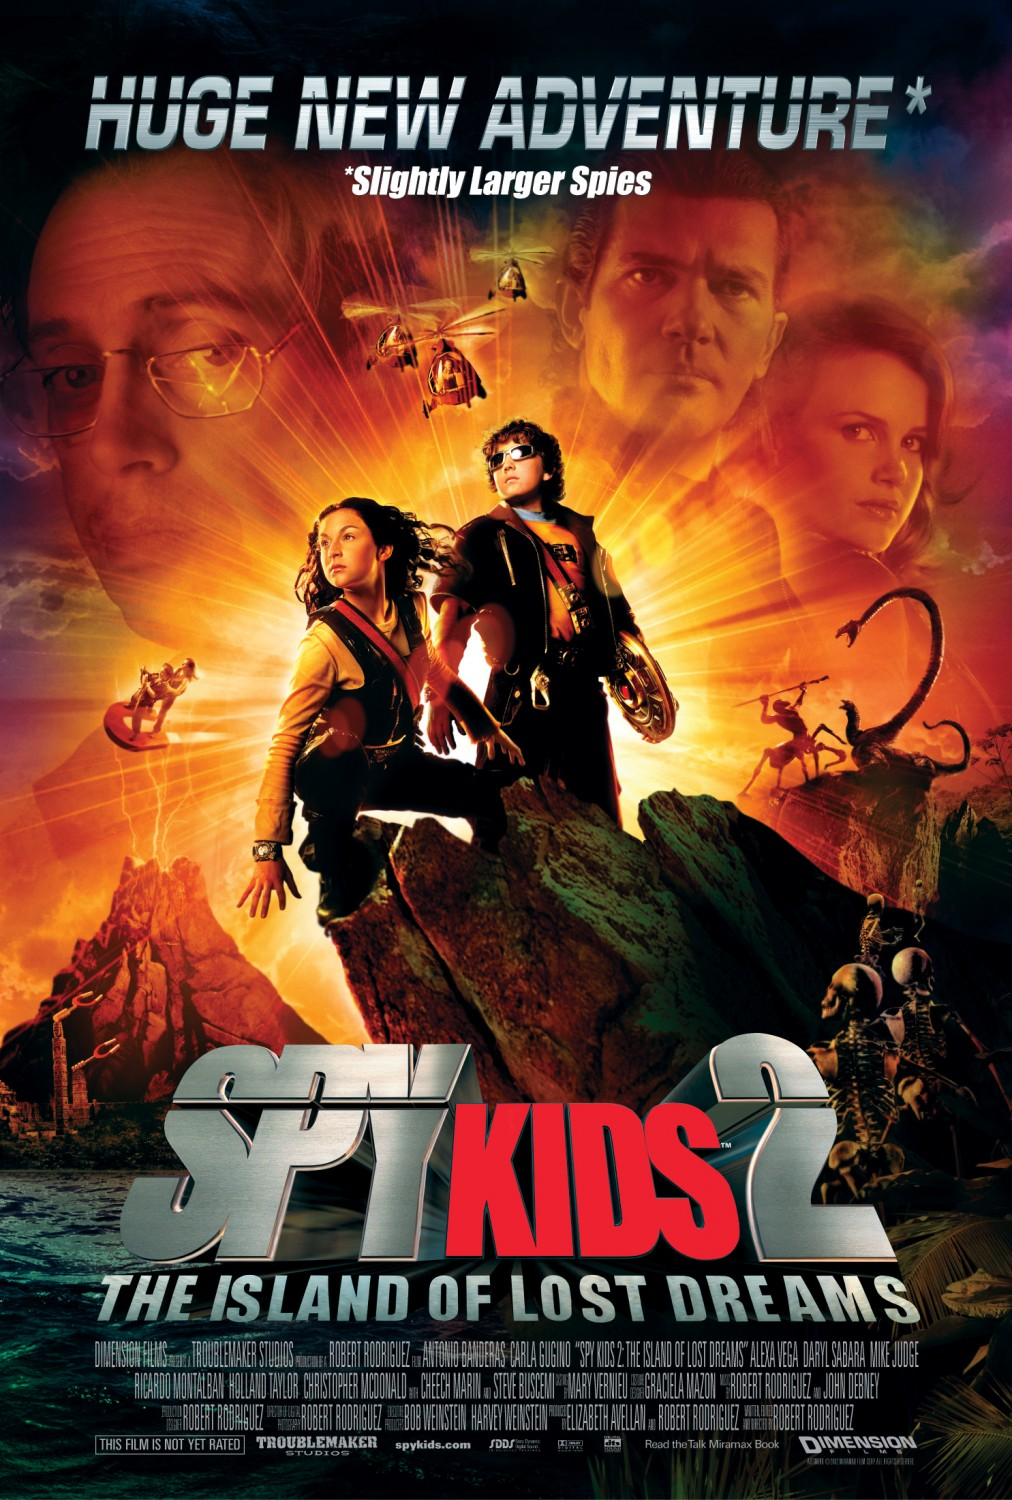 spy_kids_two_the_island_of_lost_dreams_ver2_xlg.jpg